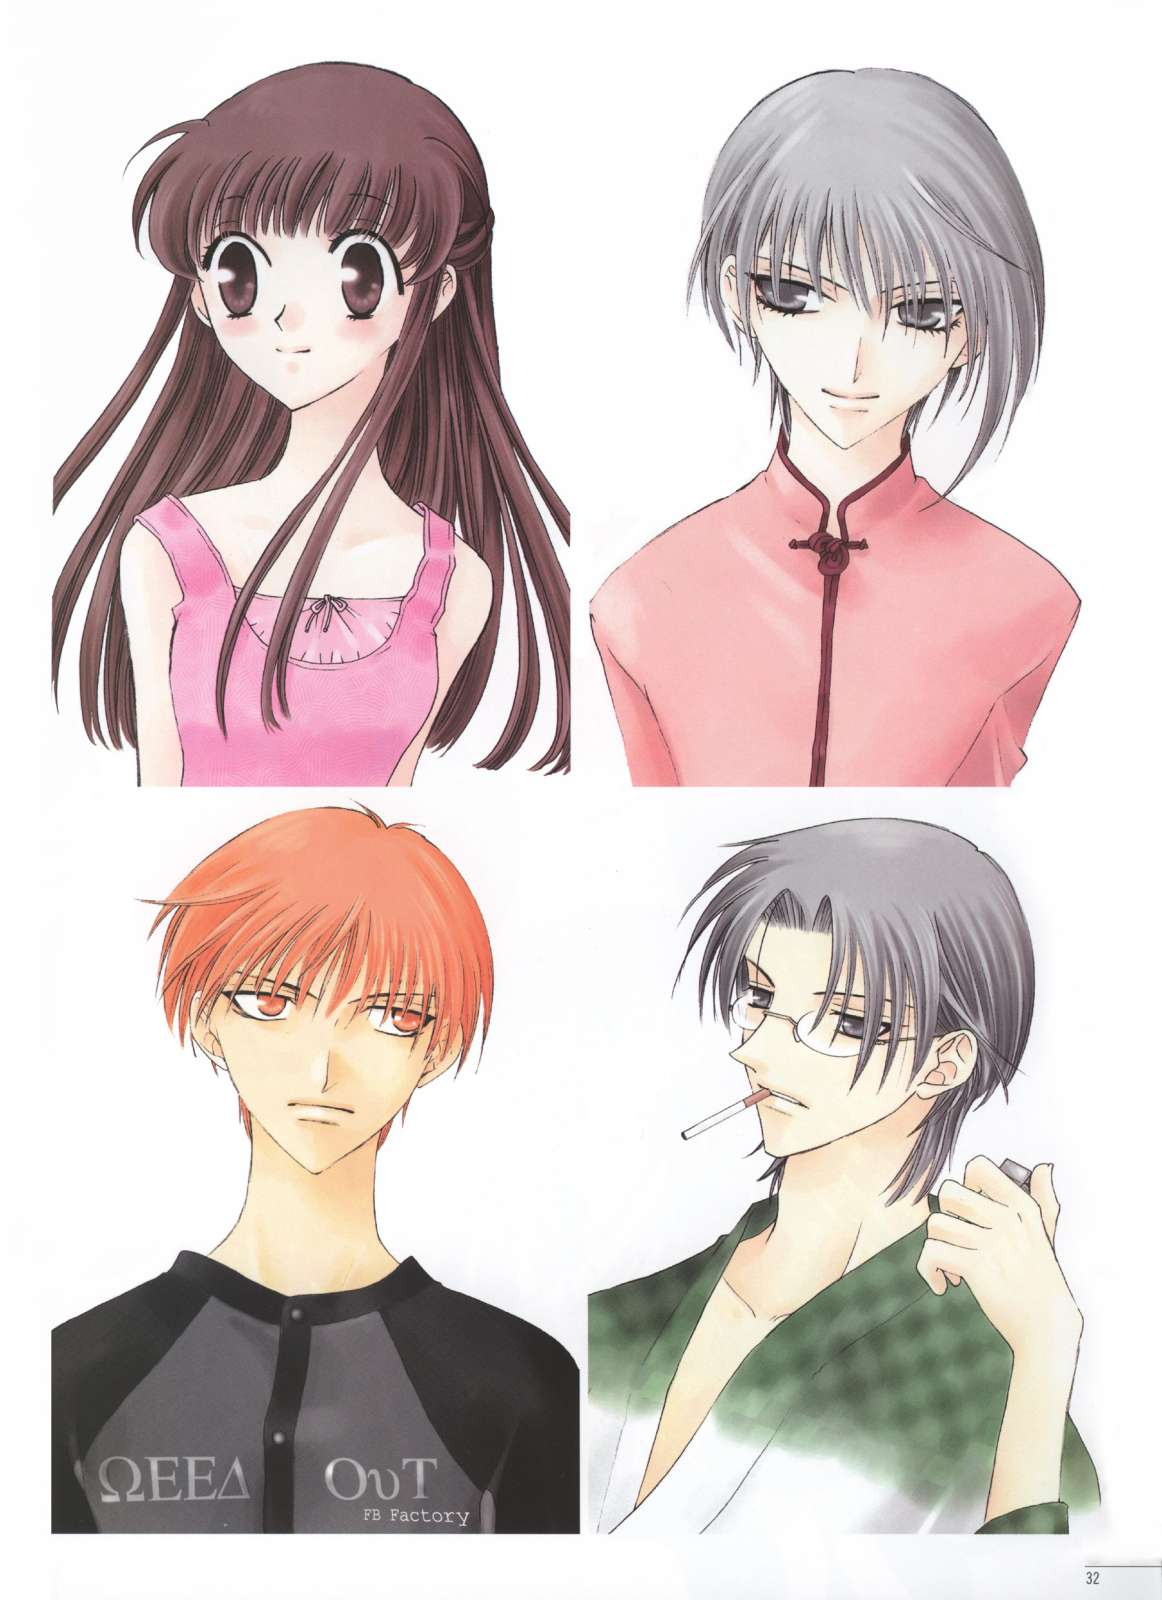 fruits basket dating quiz Includes hetalia, aot, soul eater, ohshc, fairy tail, sword art online, blue exorcist, black butler, fruits basket, and rosario vampirethis csshtml code of bts bangtan boys or beyond the scene works on almost every website or web page on the internet that allows, css and html coding what do anime characters think of you long results 2019 2018.